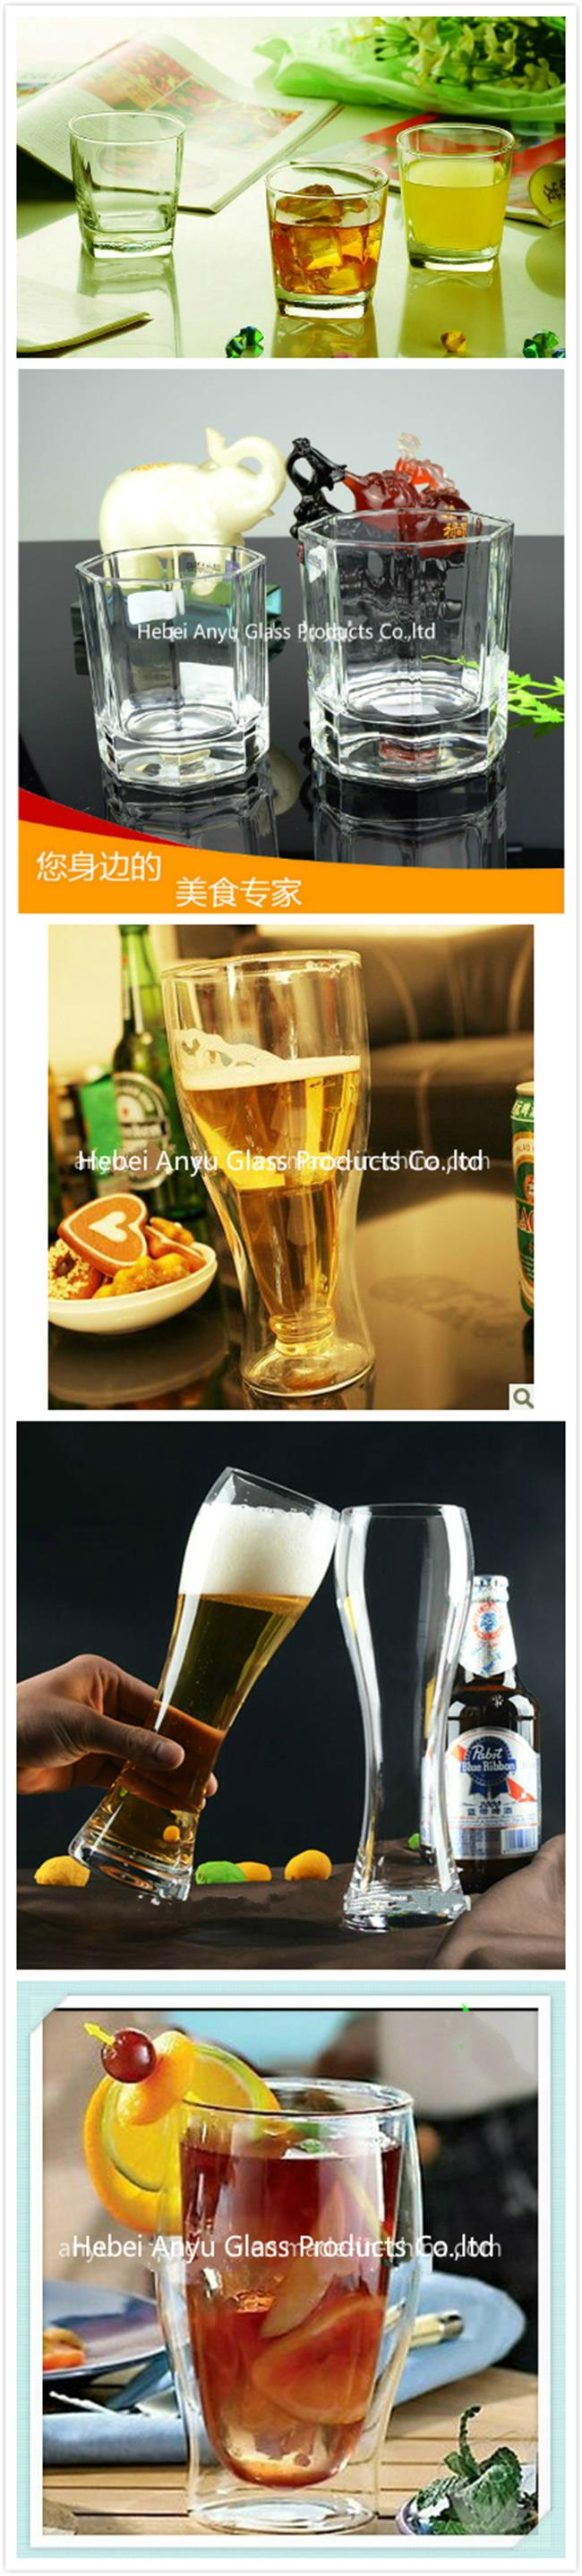 Factory Direct High Quality Square Whisky Glass Heat Resistant Transparent Glass Cup